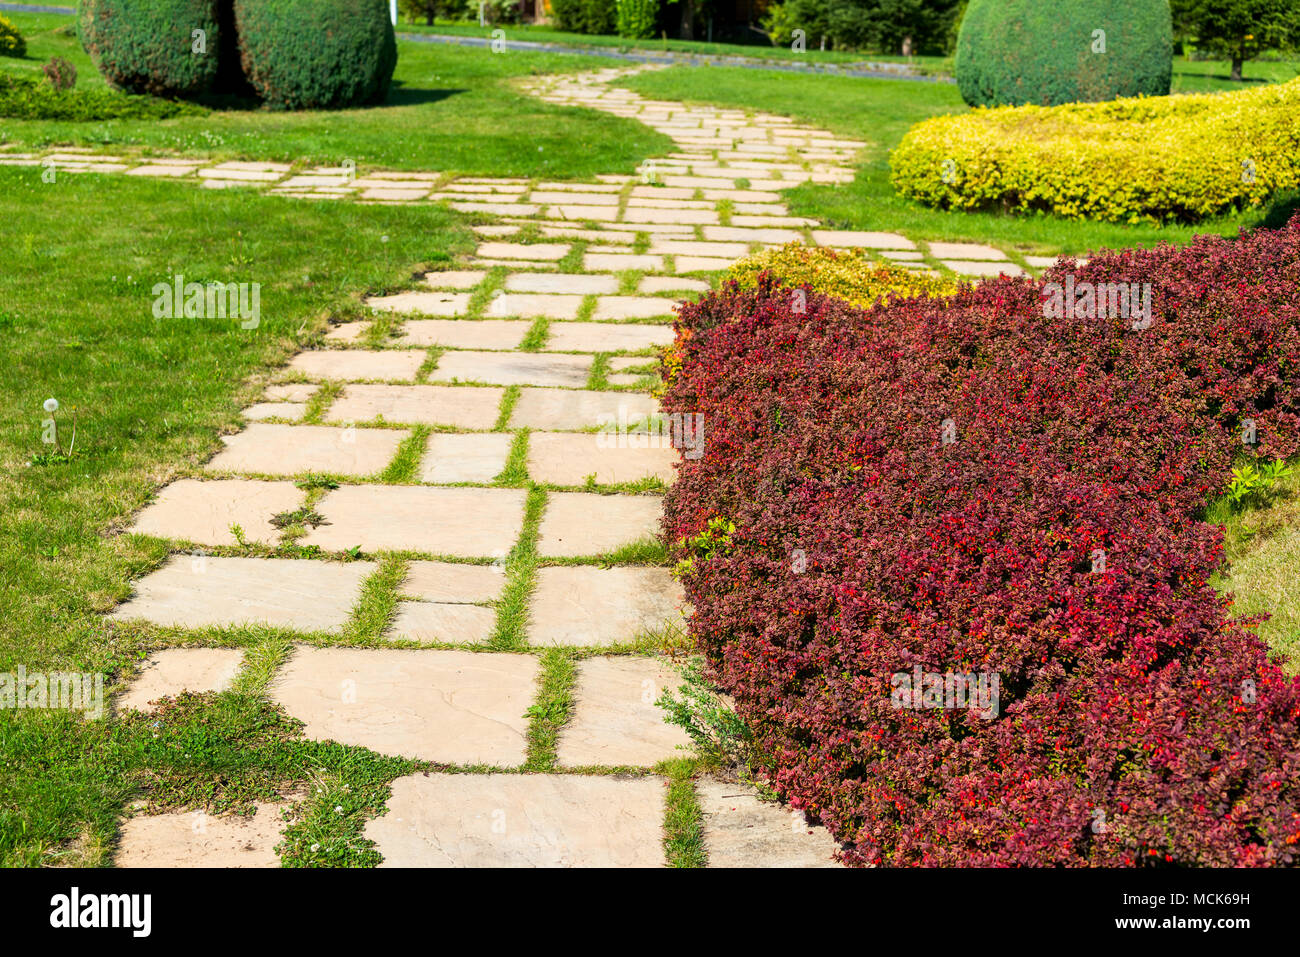 bushes of decorating in a landscape park - Stock Image